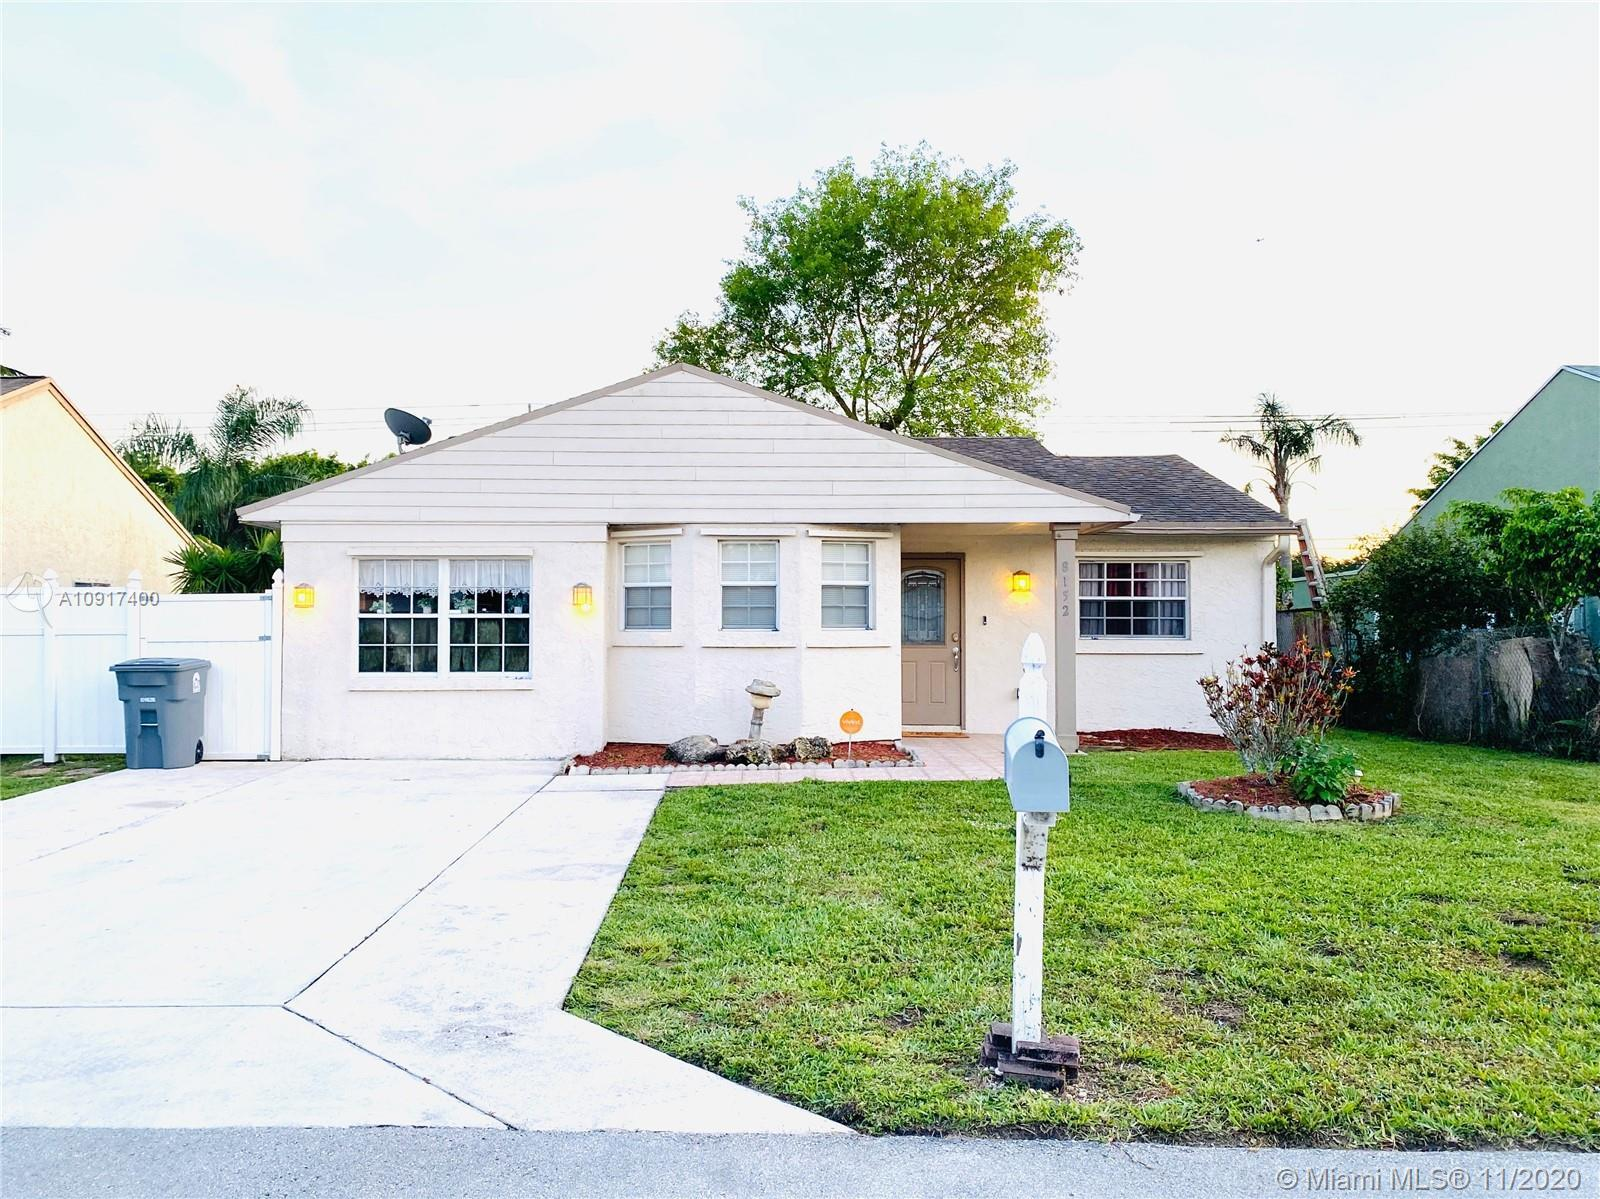 Well kept 3 bed 2 bath. Located in a very quite  neighborhood. New deck. Seller is very motivated.